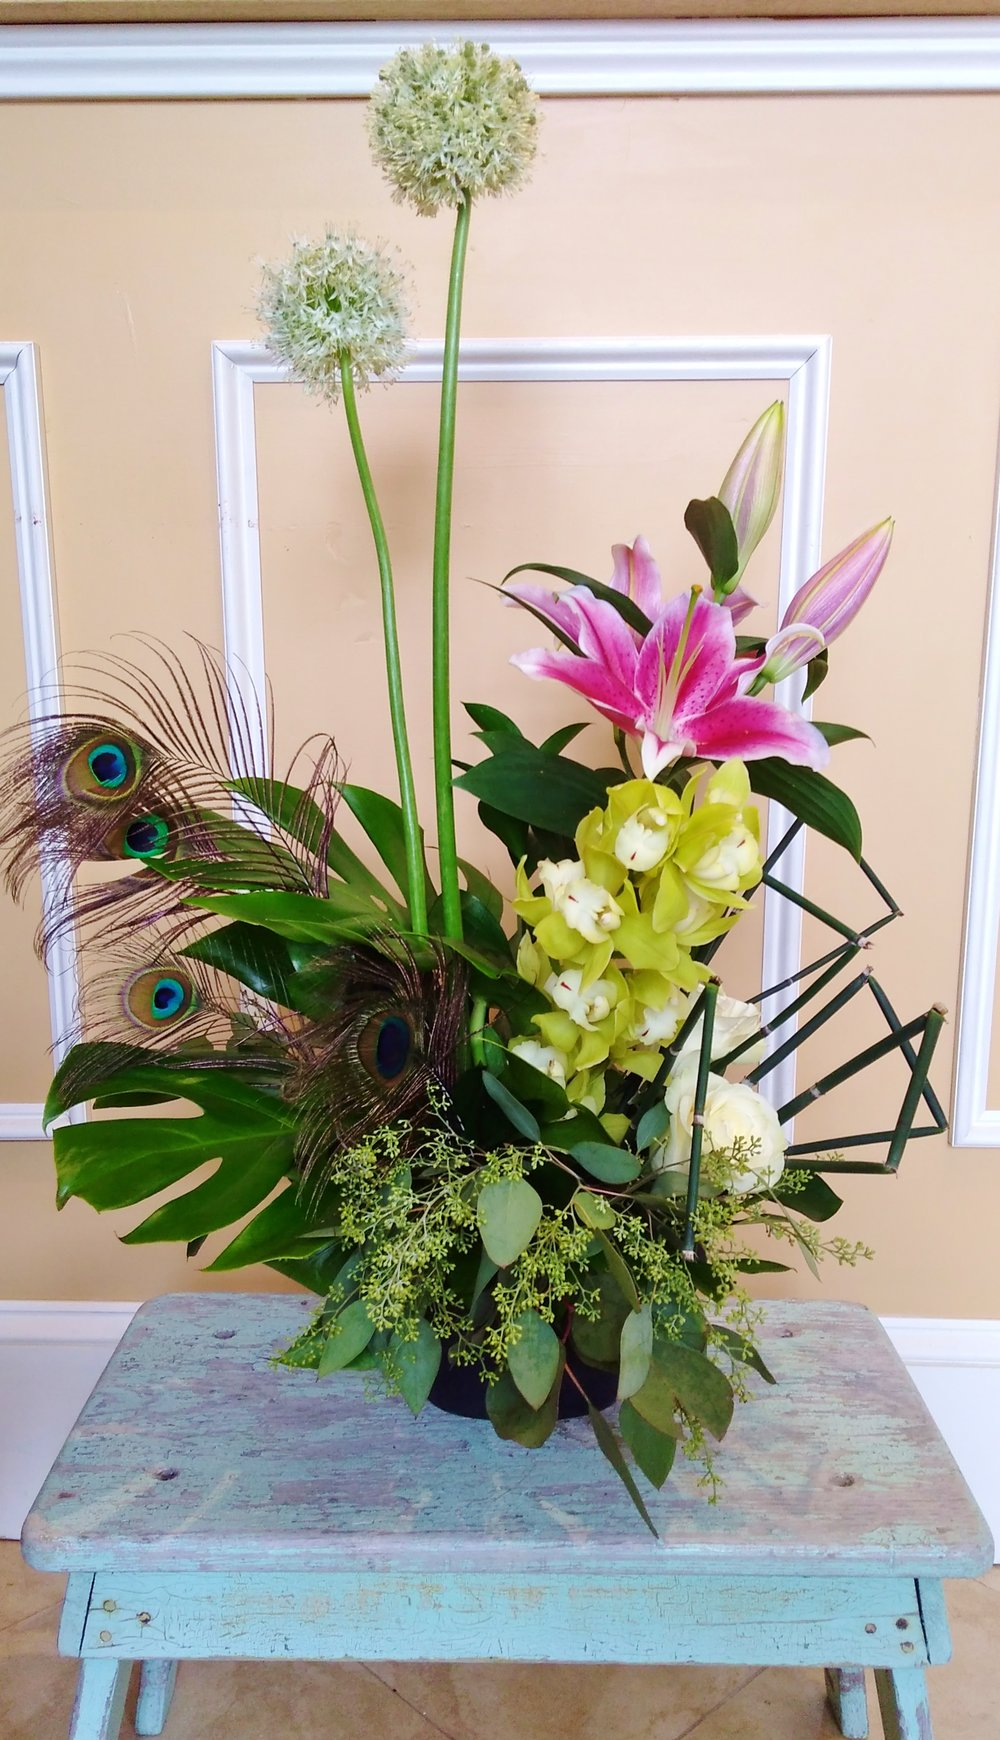 B2 $100-$200 Contemporary arrangement. $100 as shown.